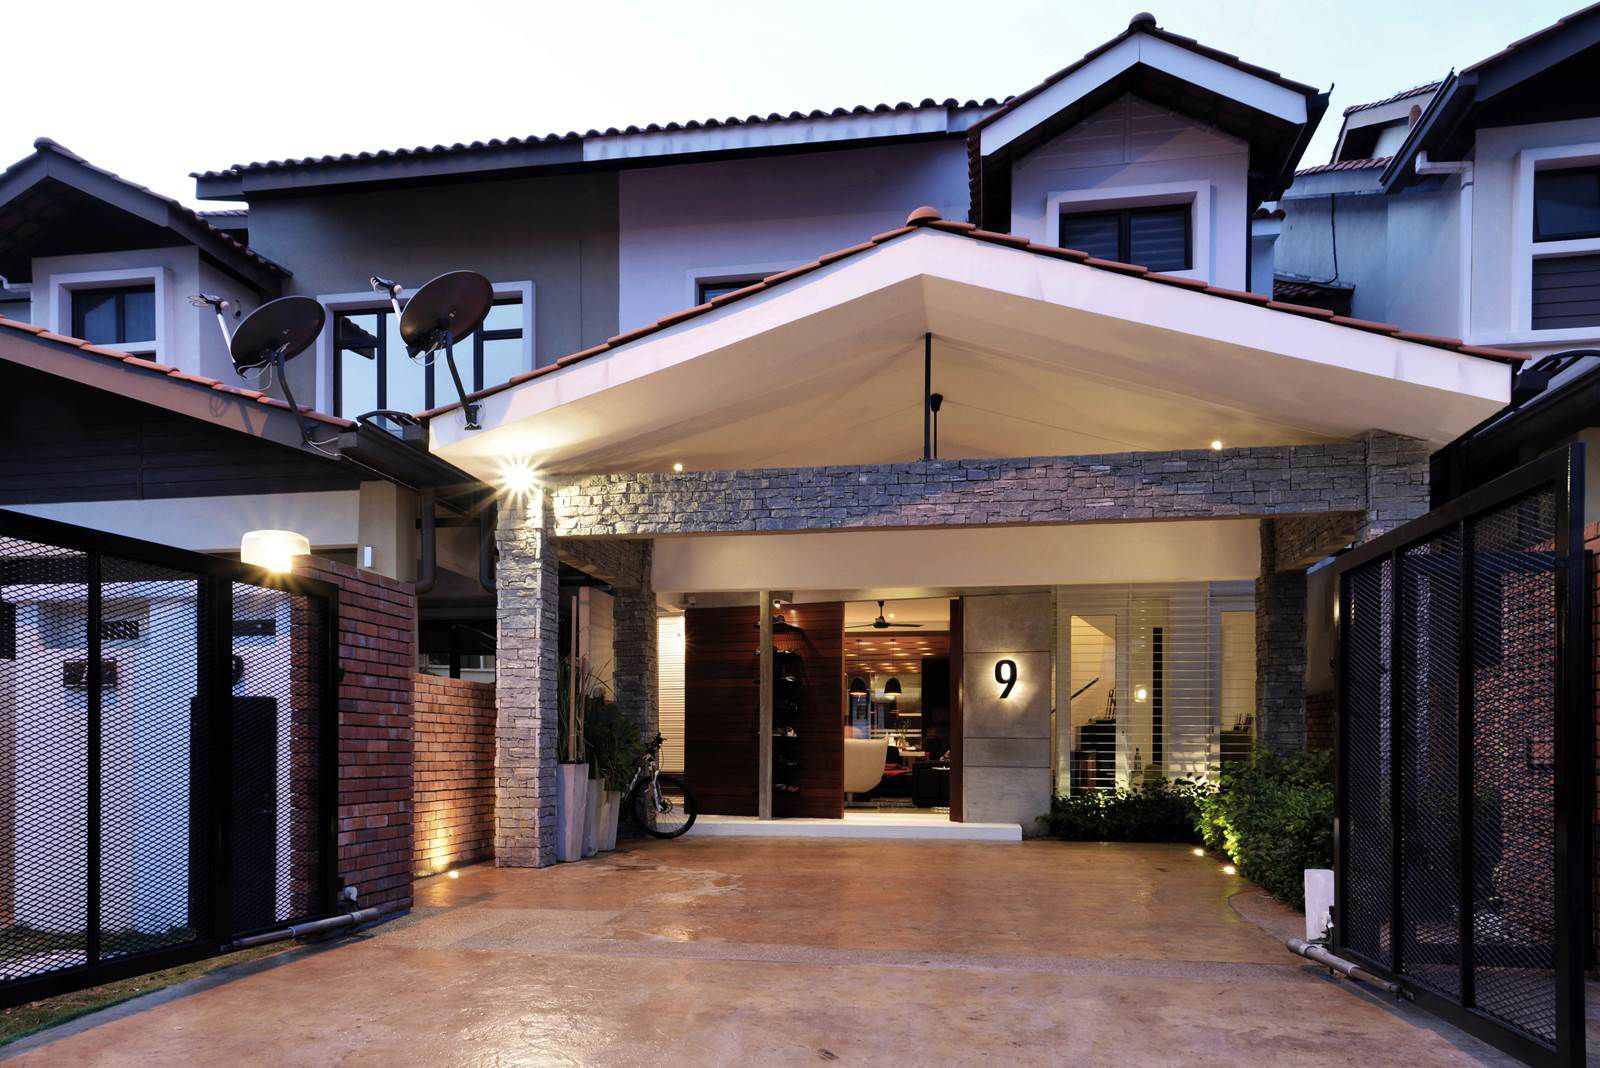 House 9 Alam Impian By Paperspace House Porch Design Terrace House Exterior House Designs Exterior